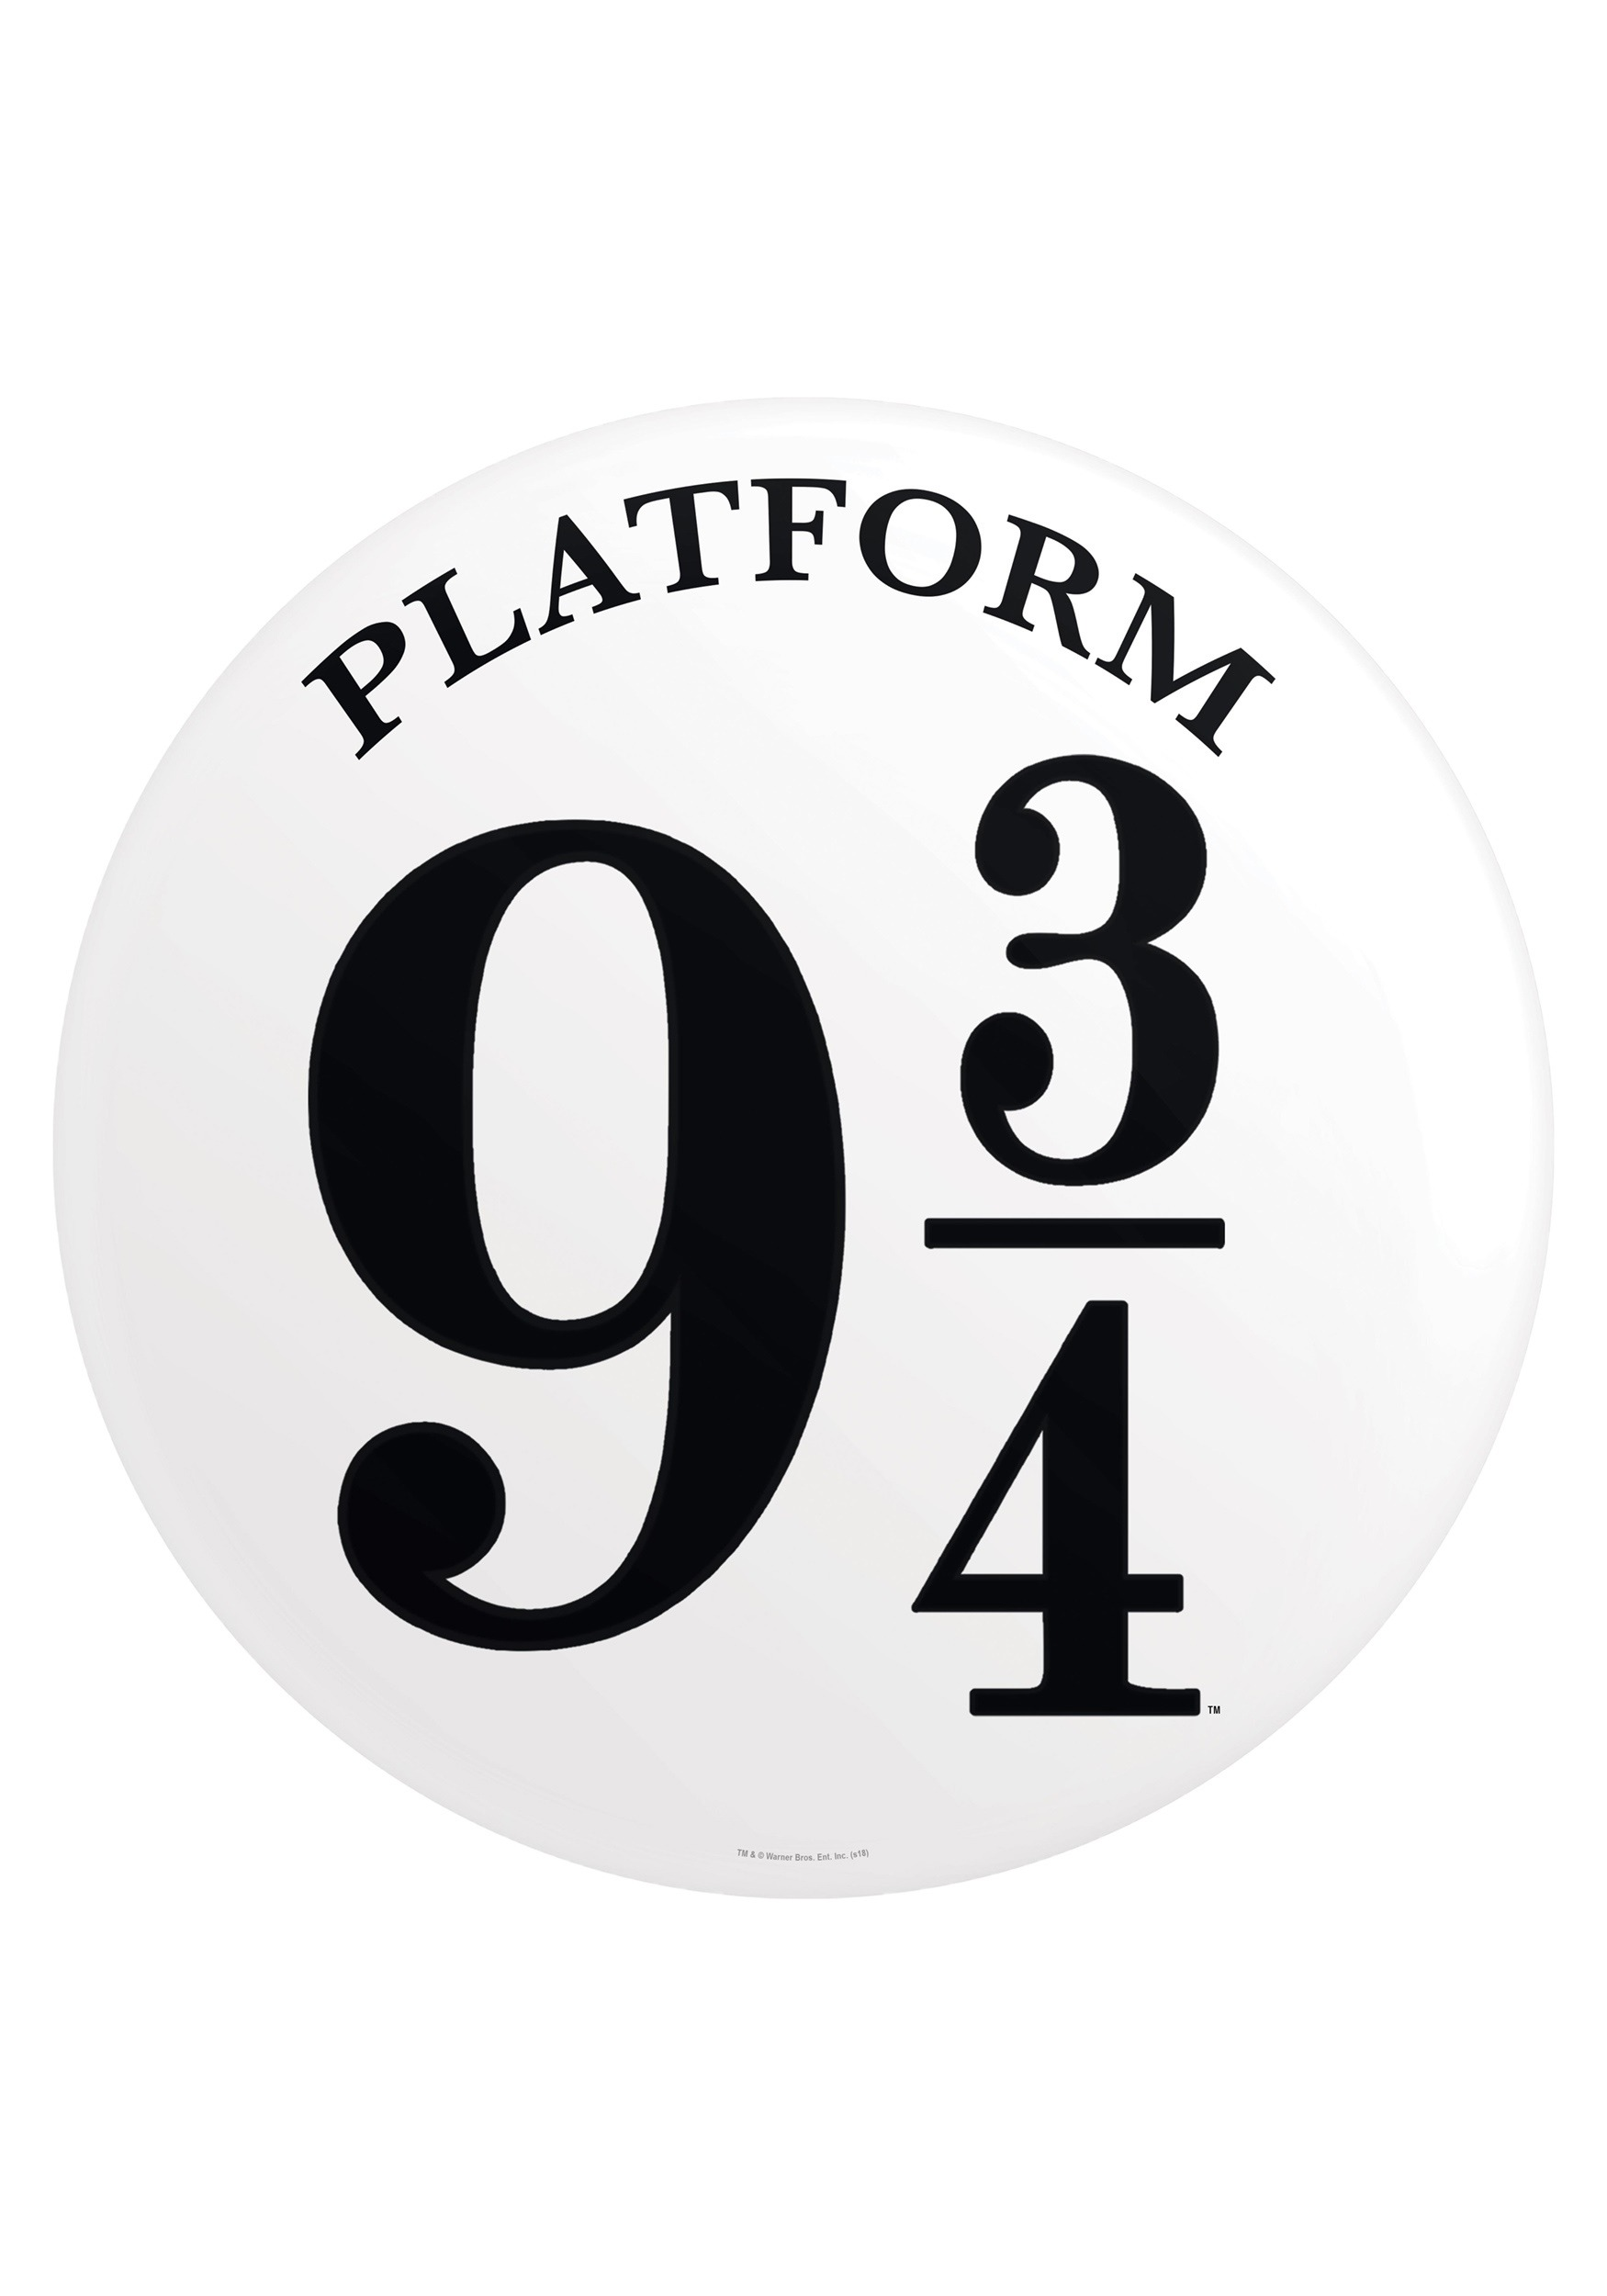 e7ee24ac968 harry-potter-platform-9-3-4-tin-sign.jpg